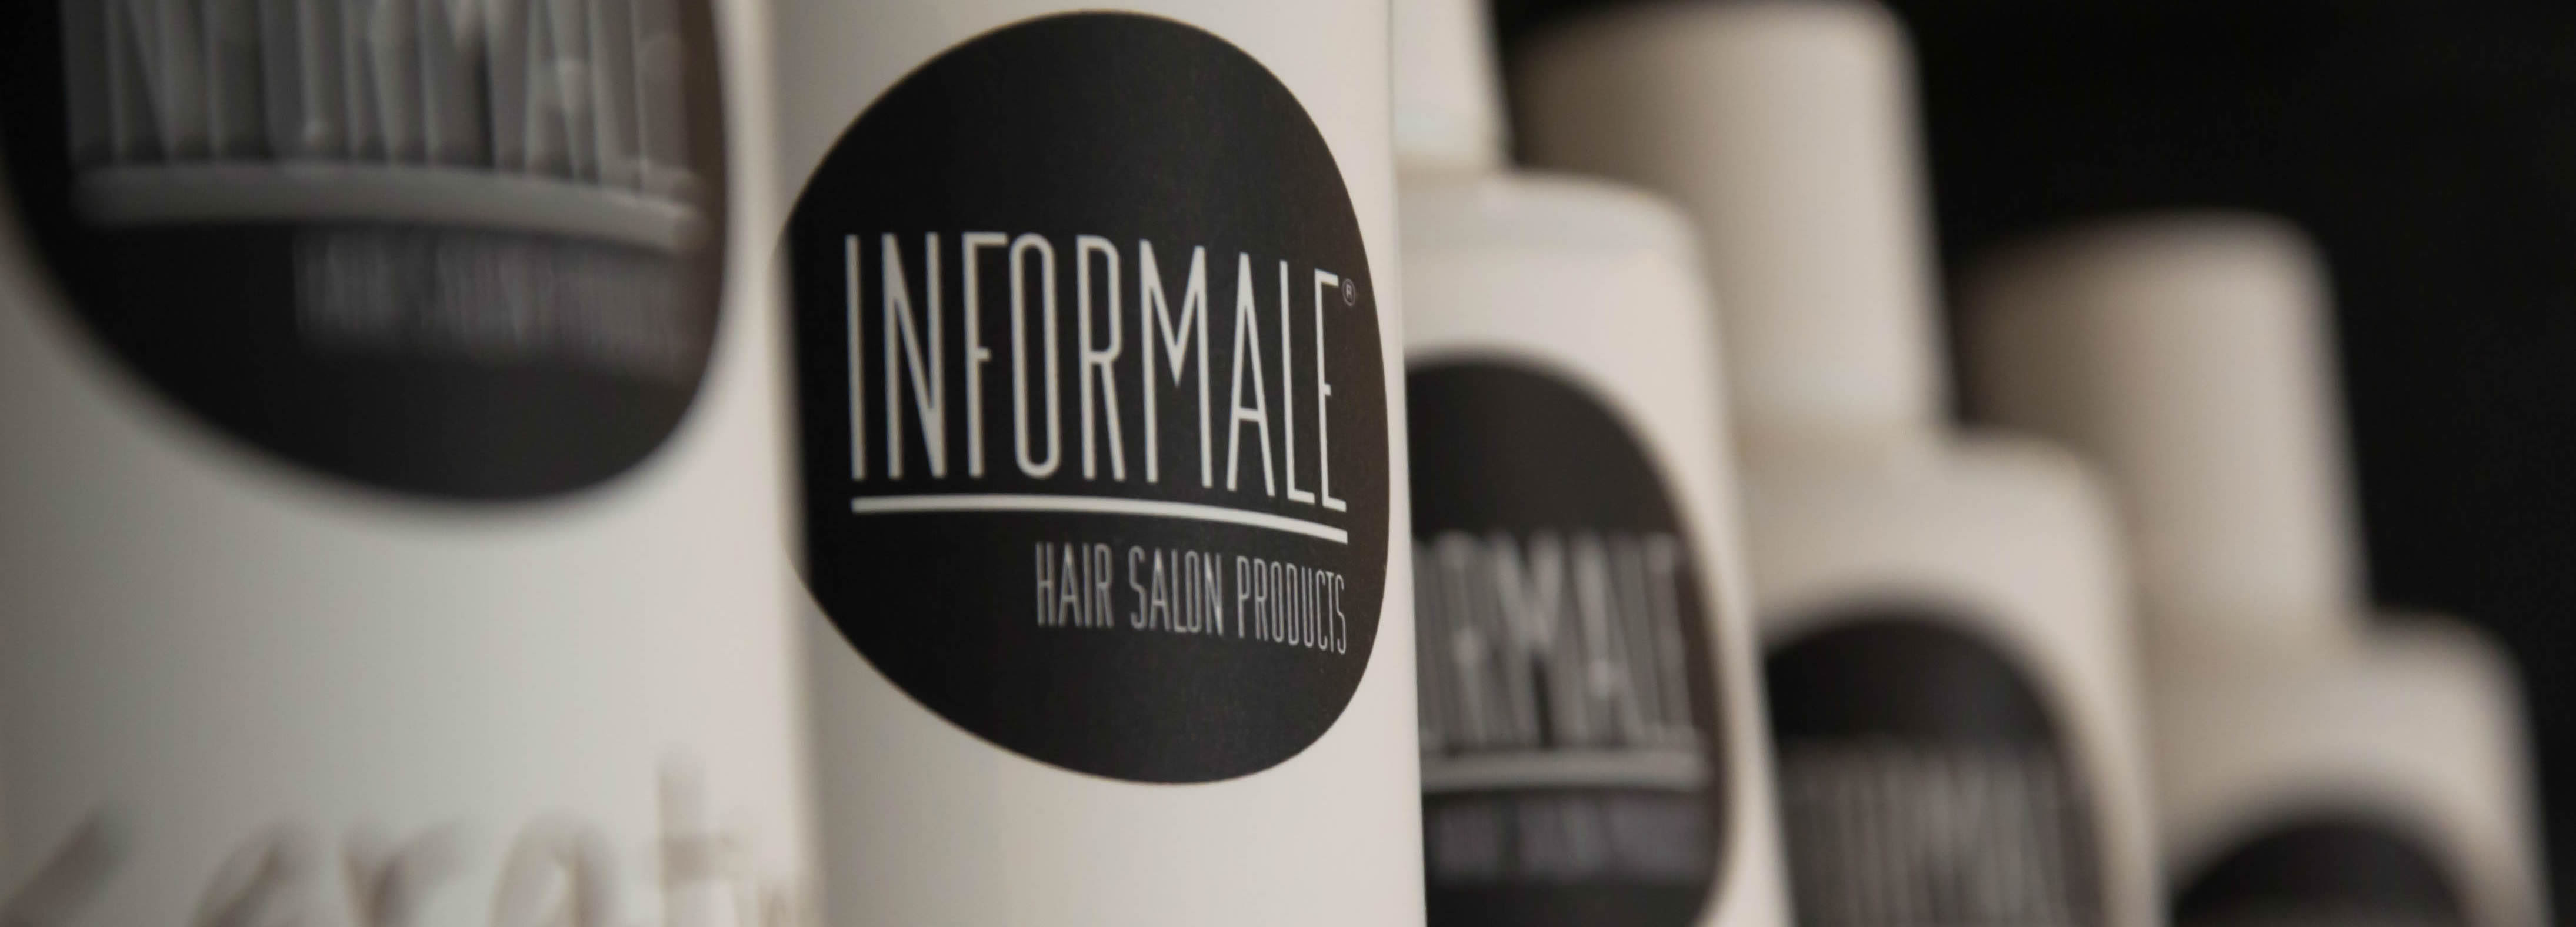 Informale Hair Salon Products